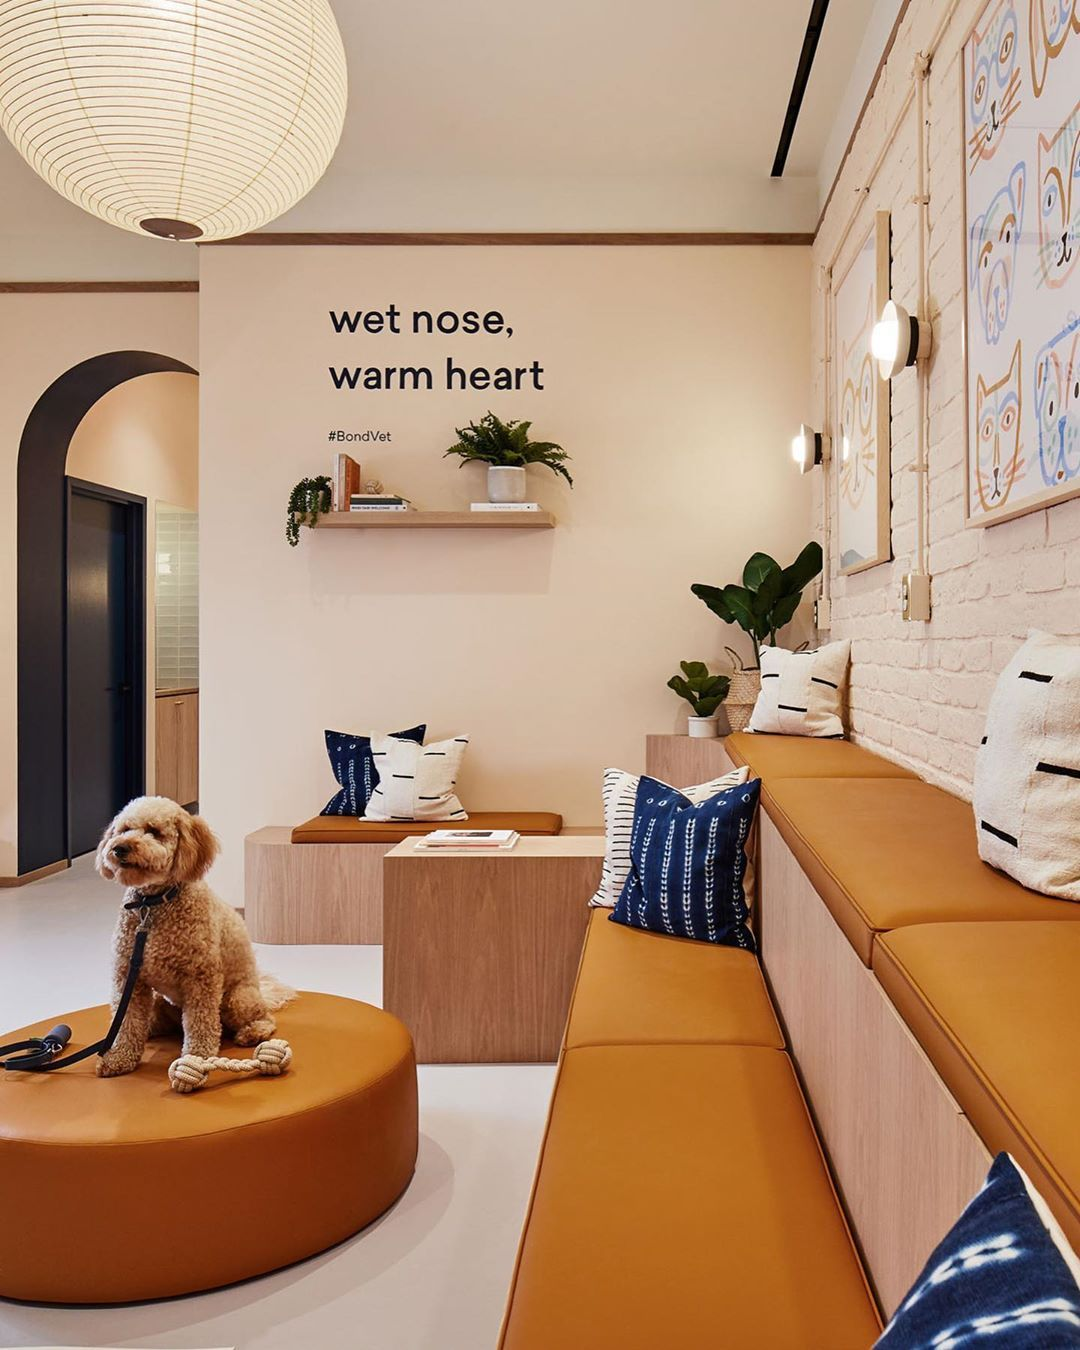 Rich Brilliant Willing On Instagram We Are Excited To Share Brooklyn S First Bondvetclinic Designed By Islynstudio Pet Clinic Vet Clinics Veterinary Clinic